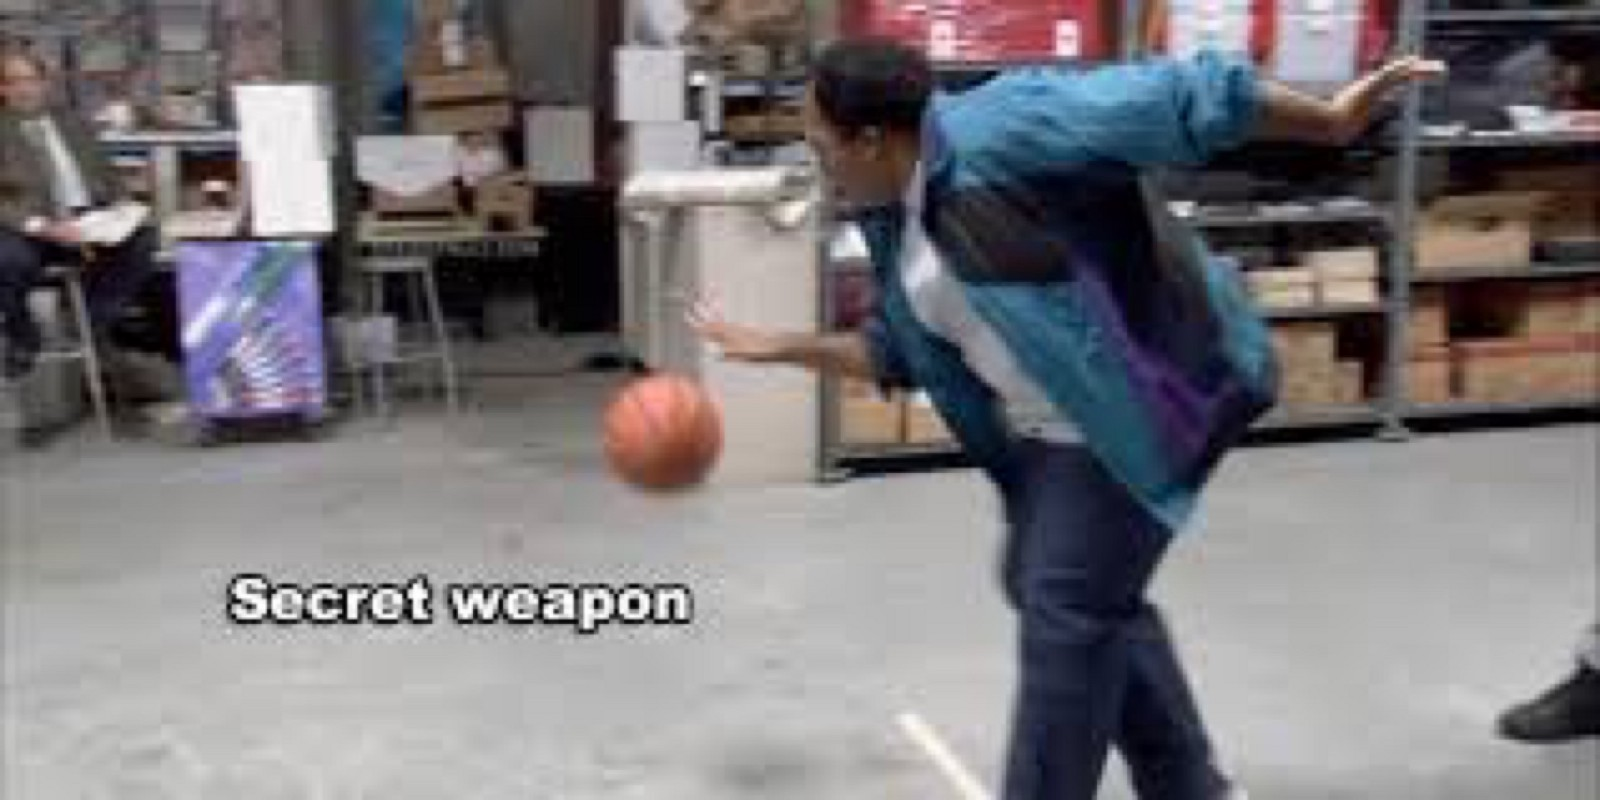 office stereotypes. In The Office, Released 2005, Many Racial Stereotypes Arise By Hilarious But Ignorant Michael Scott. Basketball Episode First Season, Office